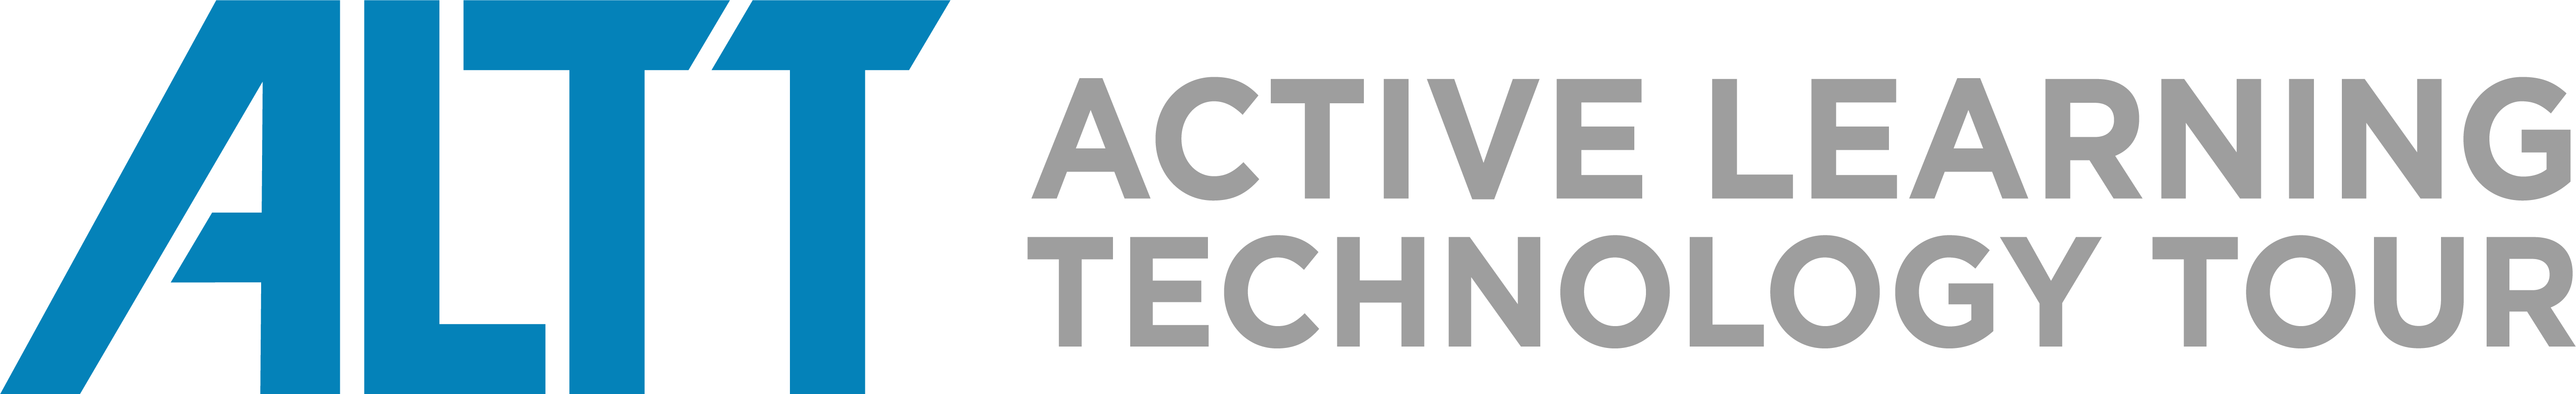 T1V-Active-Learning-Technology-Tour-Logo-Horizontal